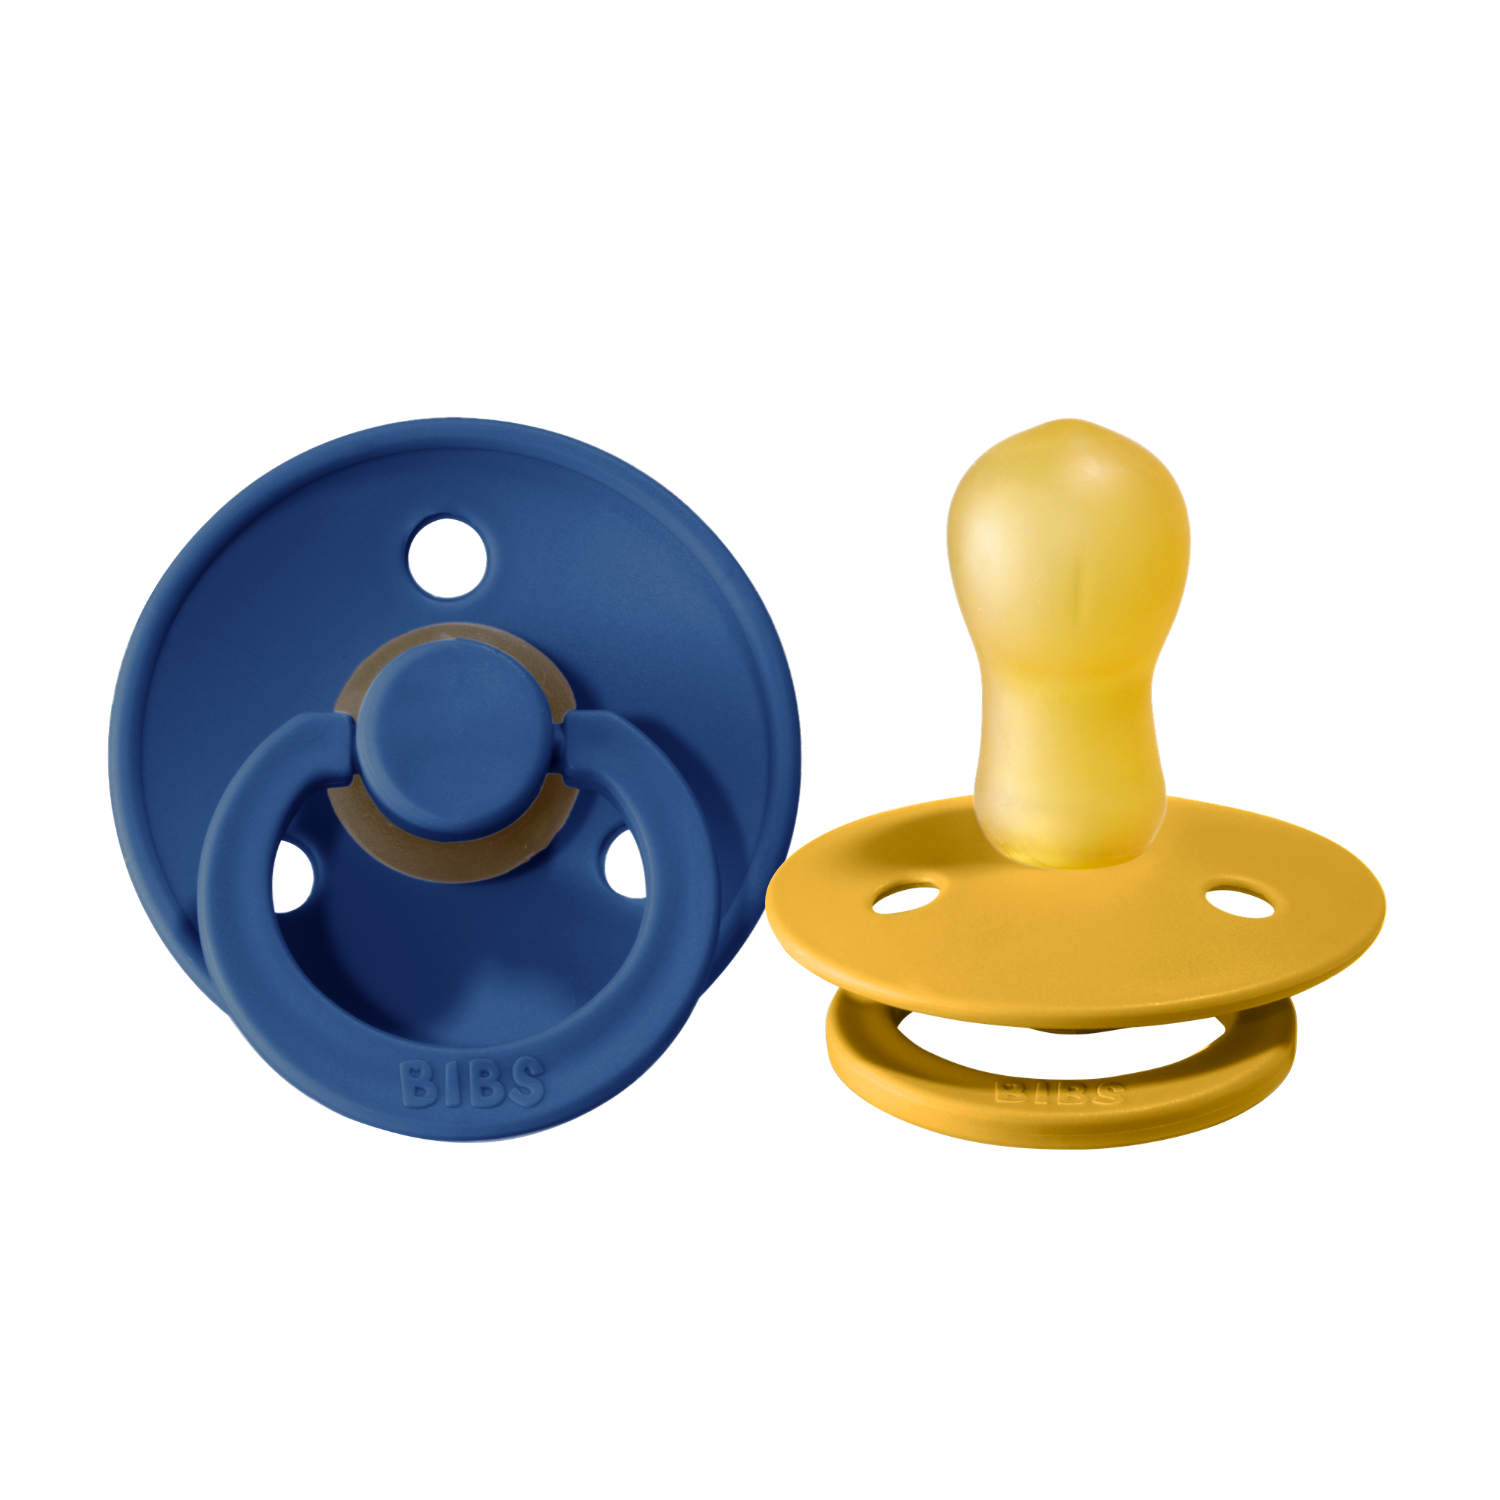 Bibs pacifier +18M 2-pack midnight + mustard